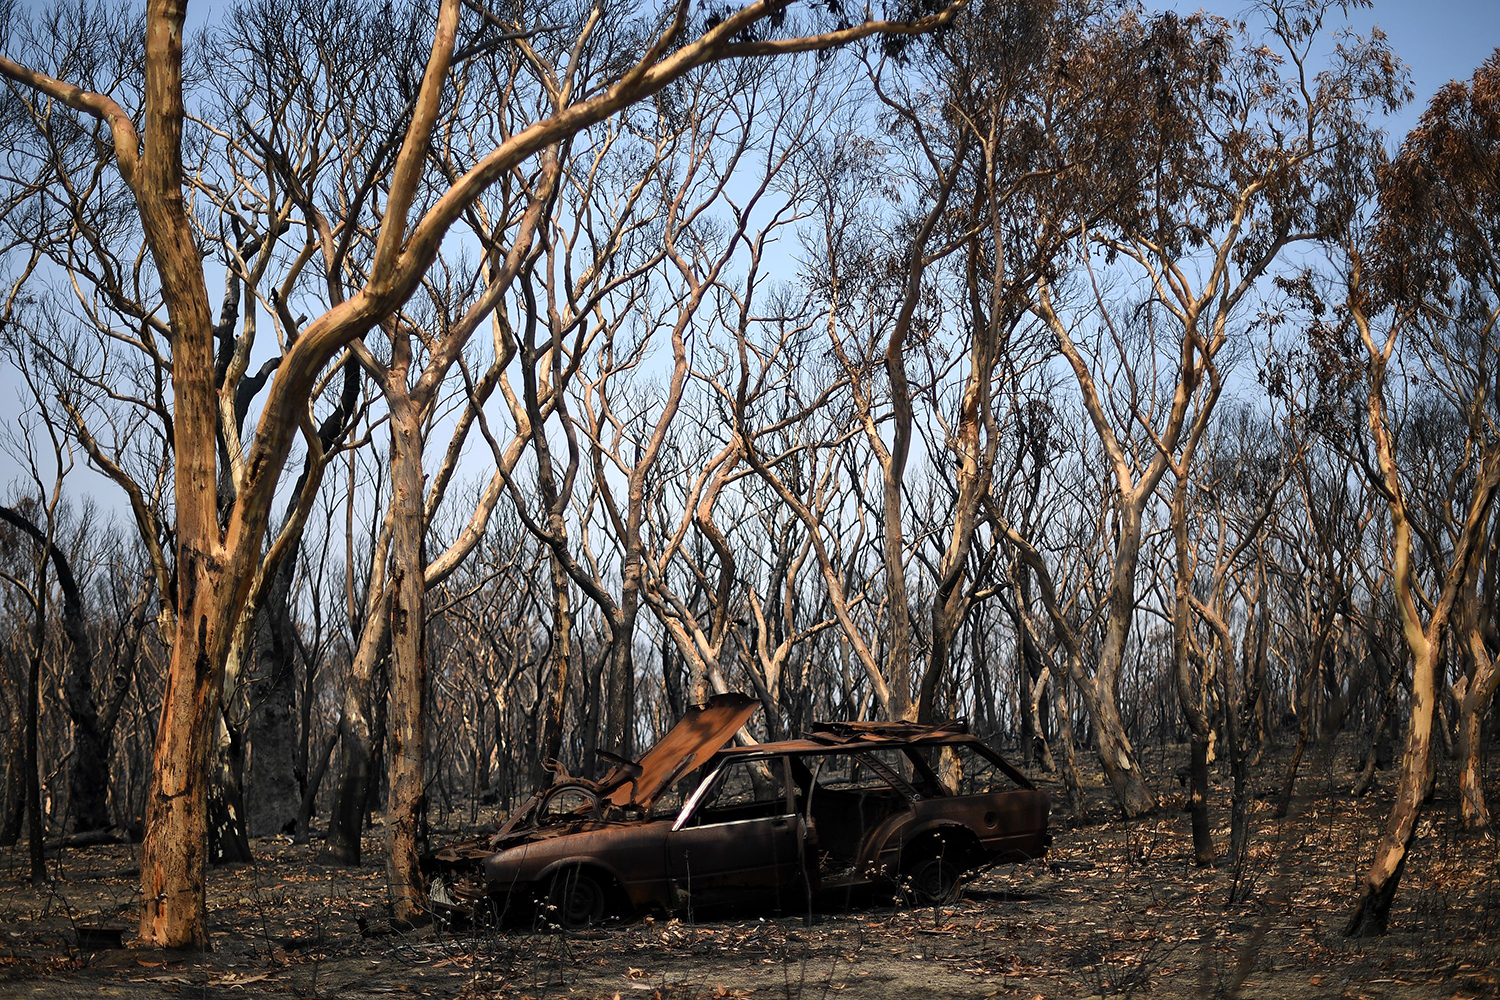 A destroyed car is seen among charred trees in Lithgow, in Australia's New South Wales, on Jan. 11. SAEED KHAN/AFP via Getty Images